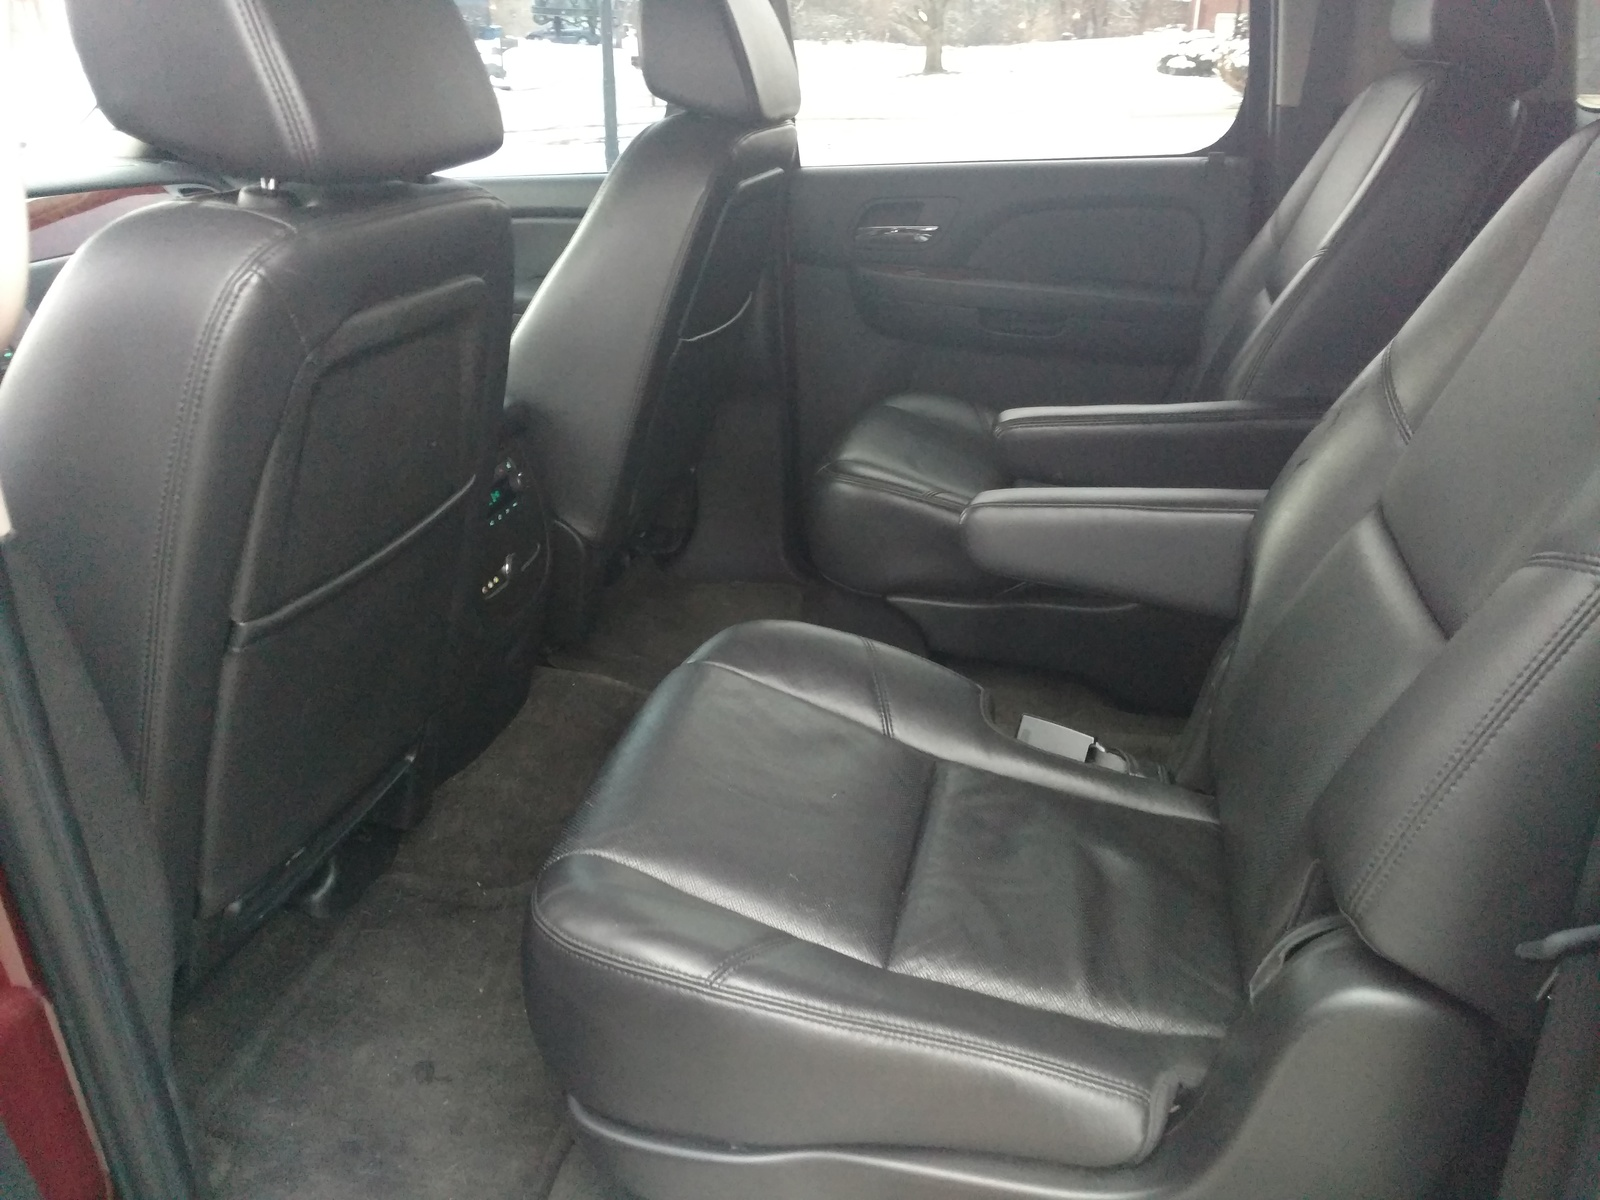 chevrolet suburban questions 2009 suburban second row. Black Bedroom Furniture Sets. Home Design Ideas